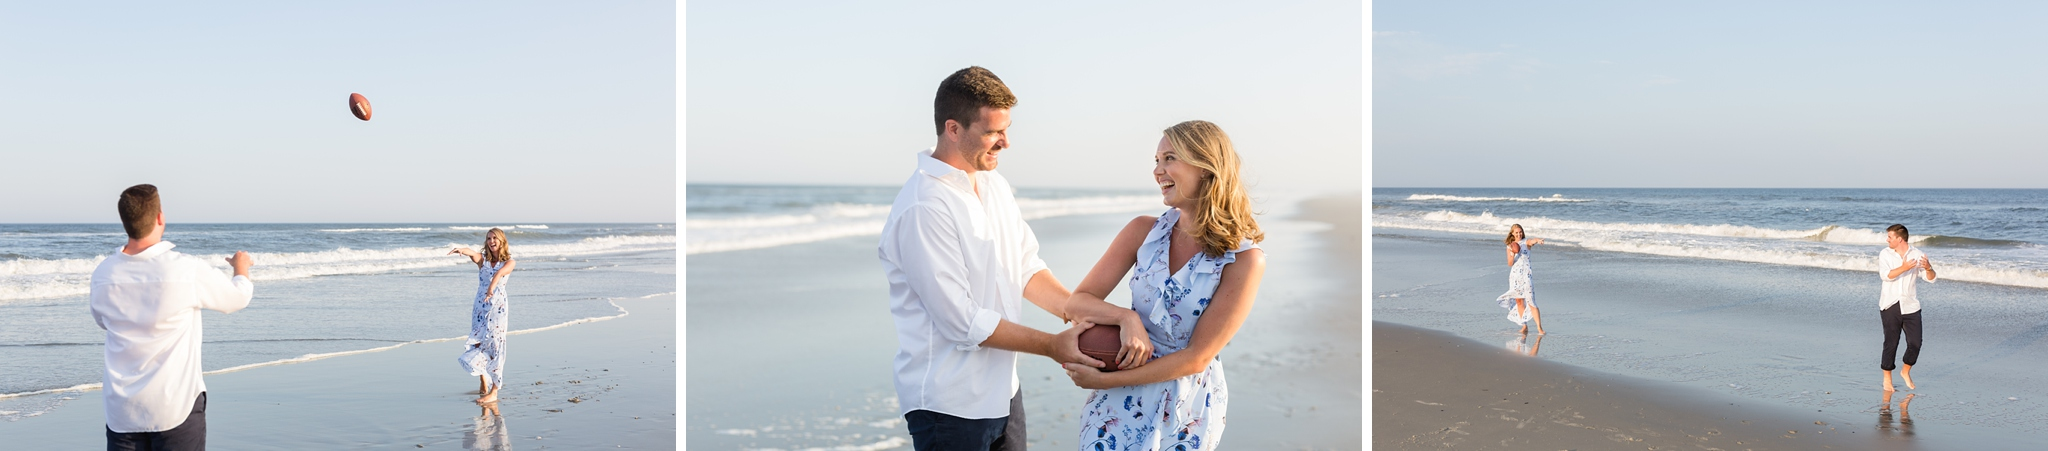 Sea_Isle_City_NJ_Beach_Engagement_Session_07.jpg